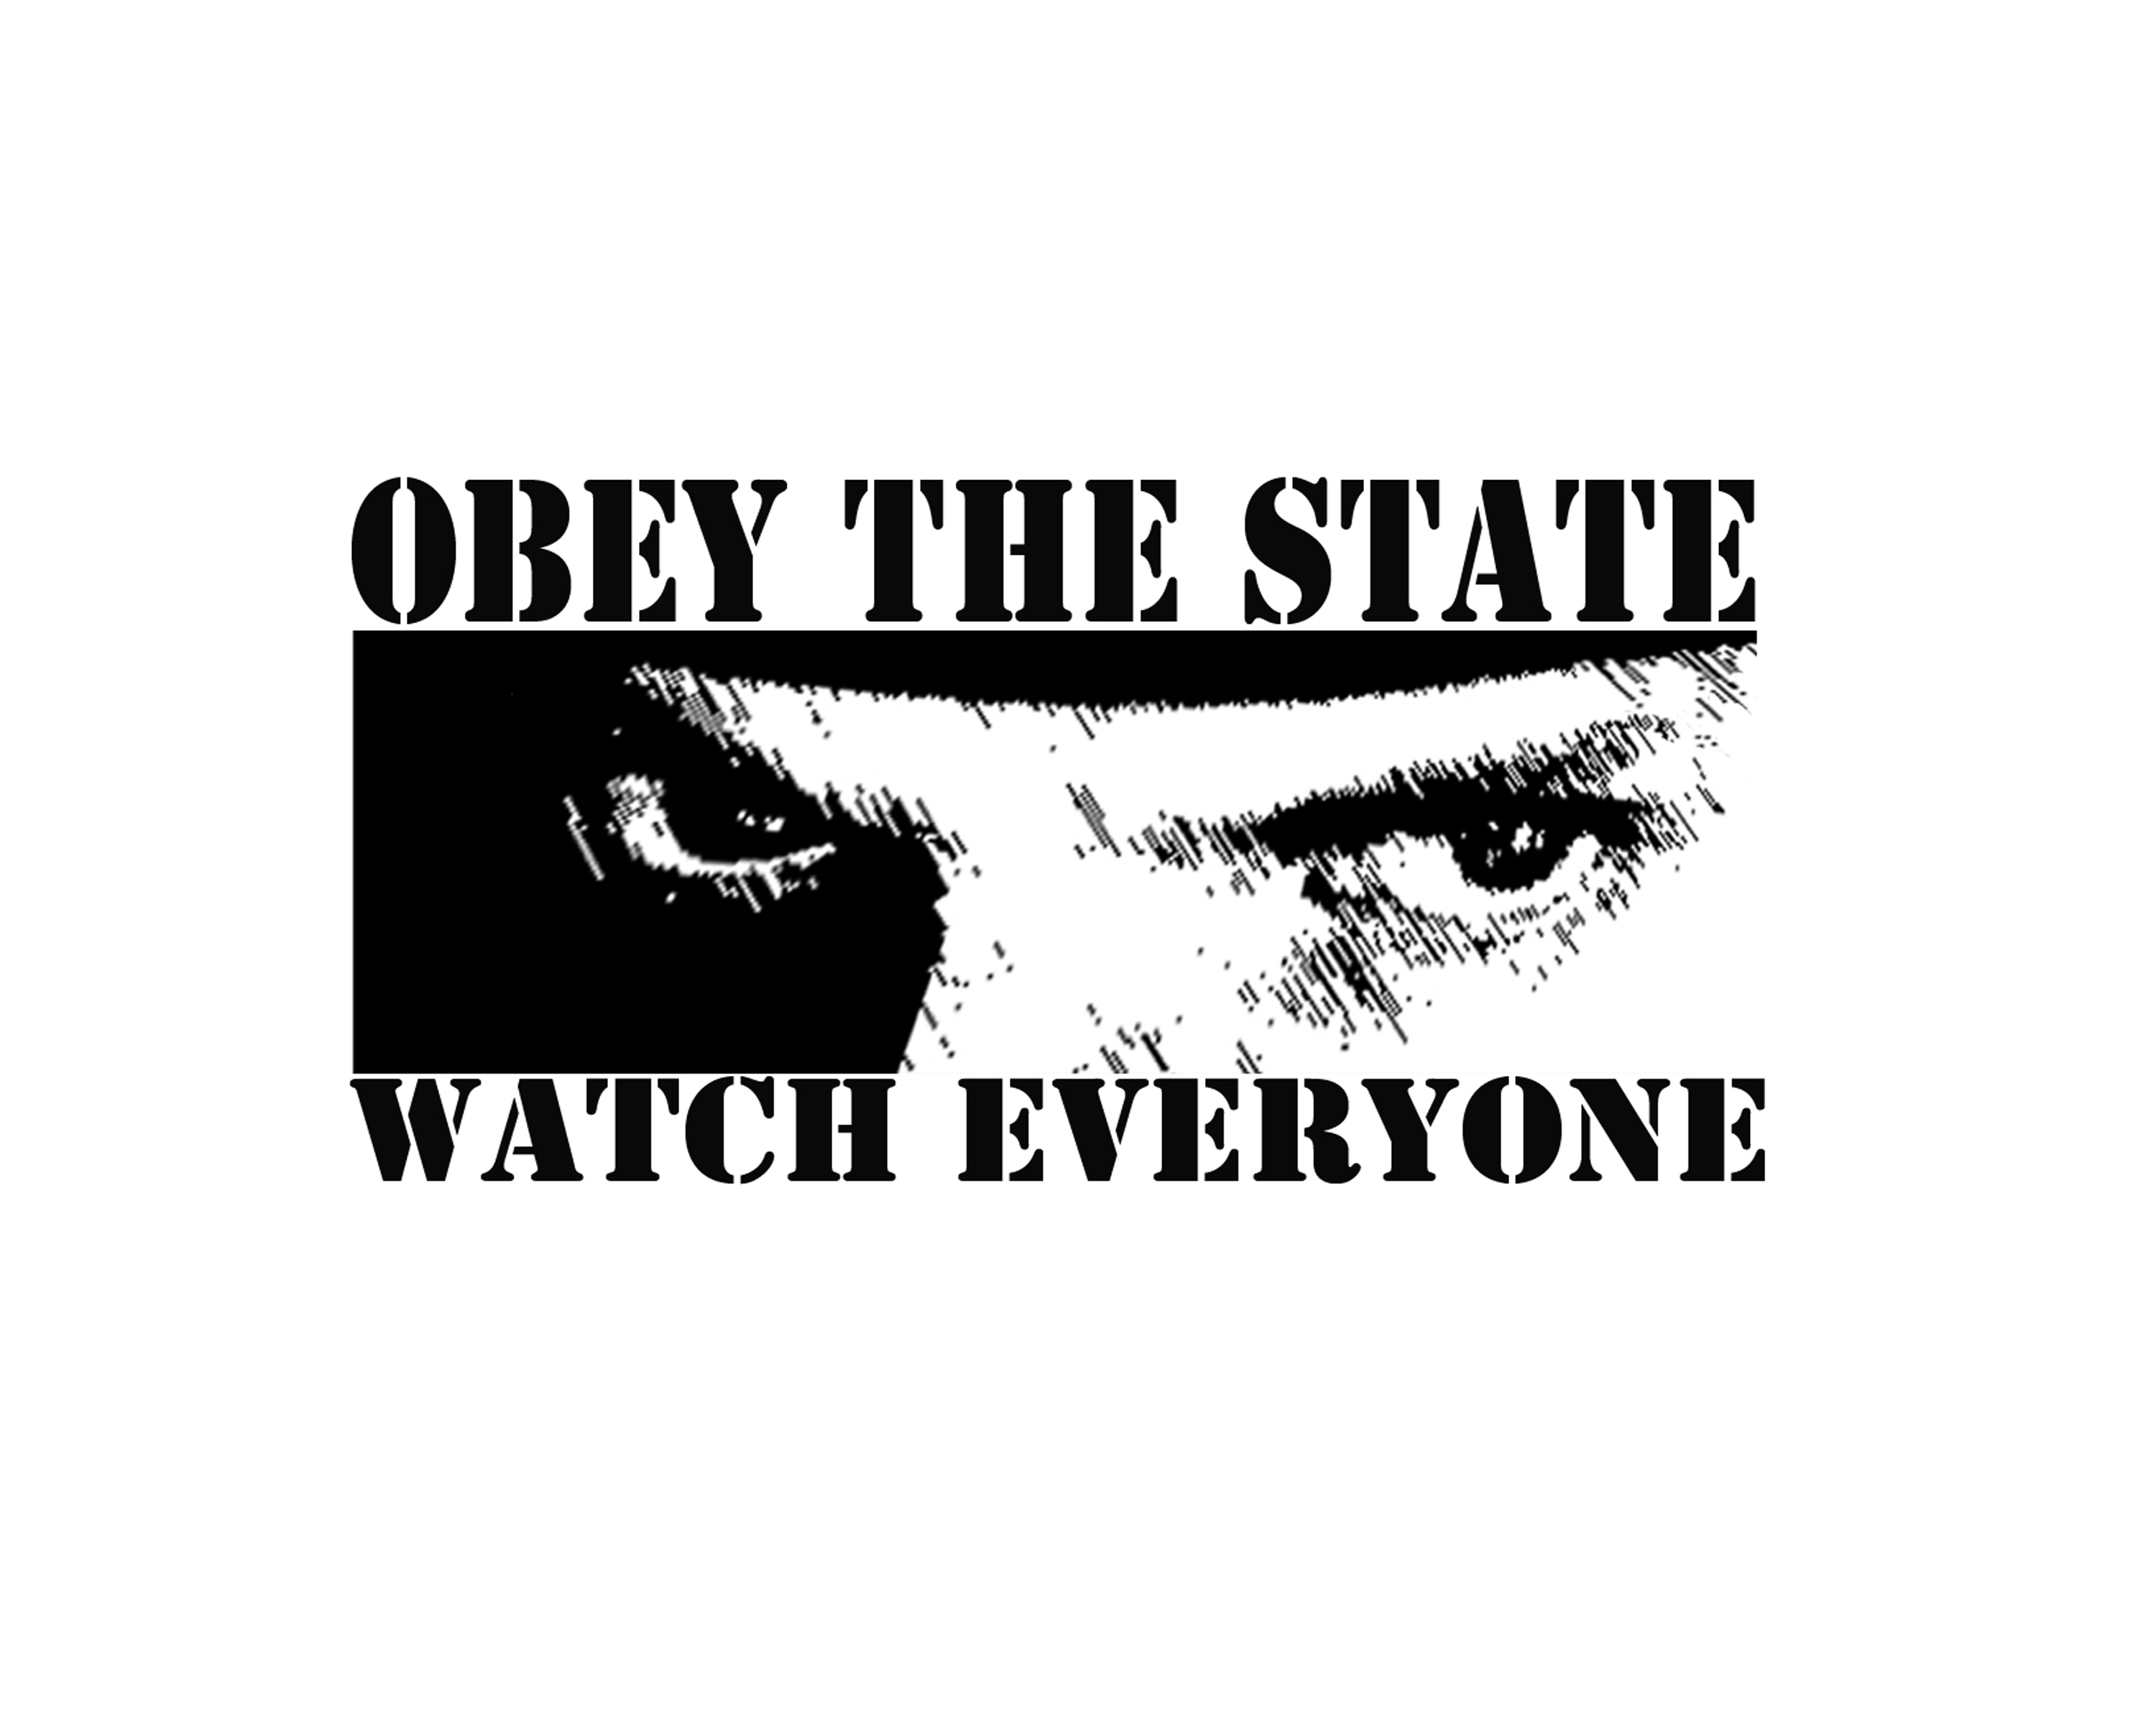 obey the state